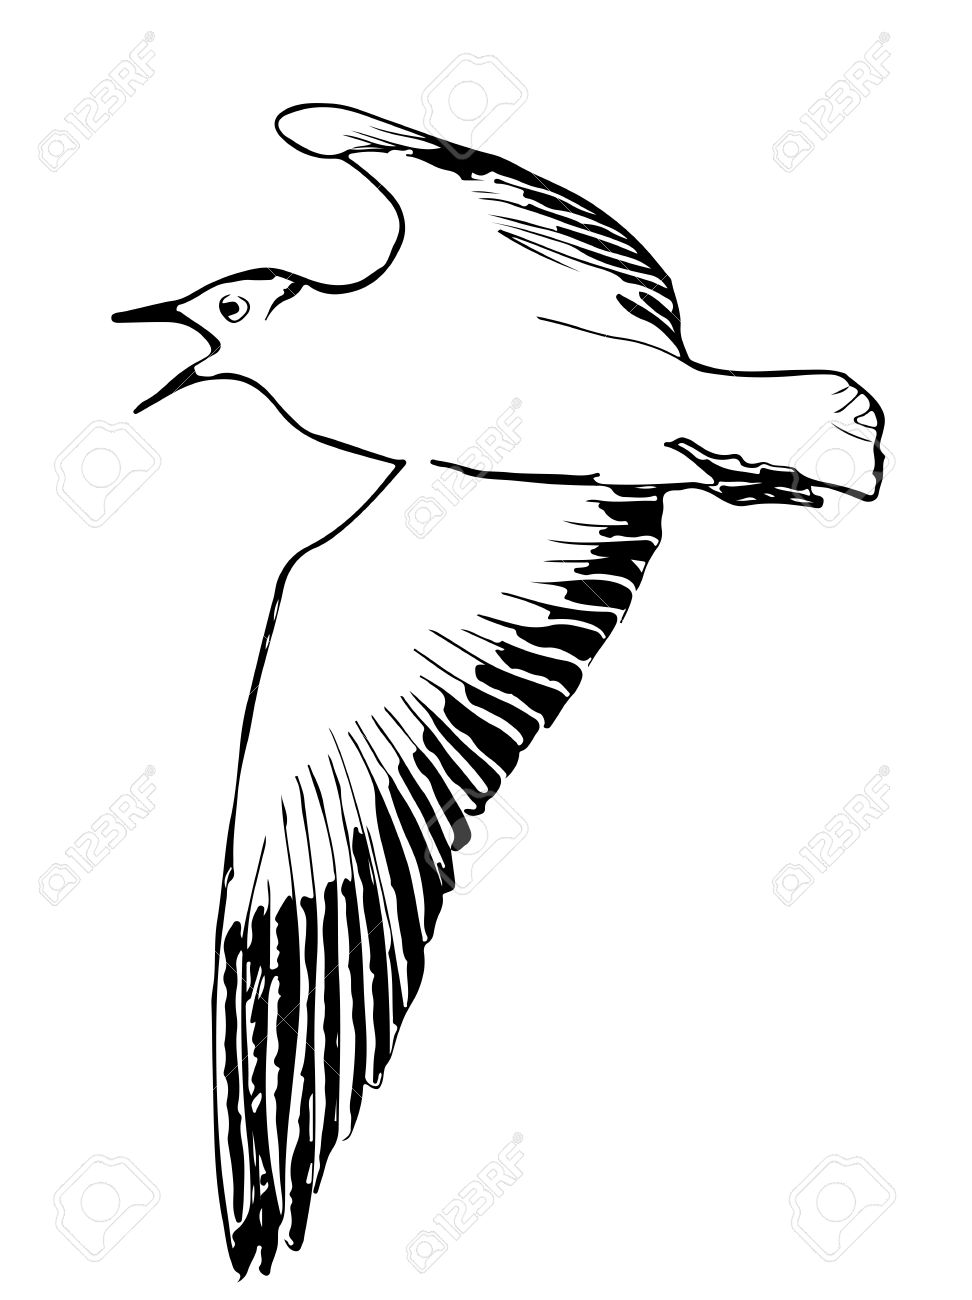 972x1300 A Hand Drawn Vector Illustration Sketch Of A Seagull Flying